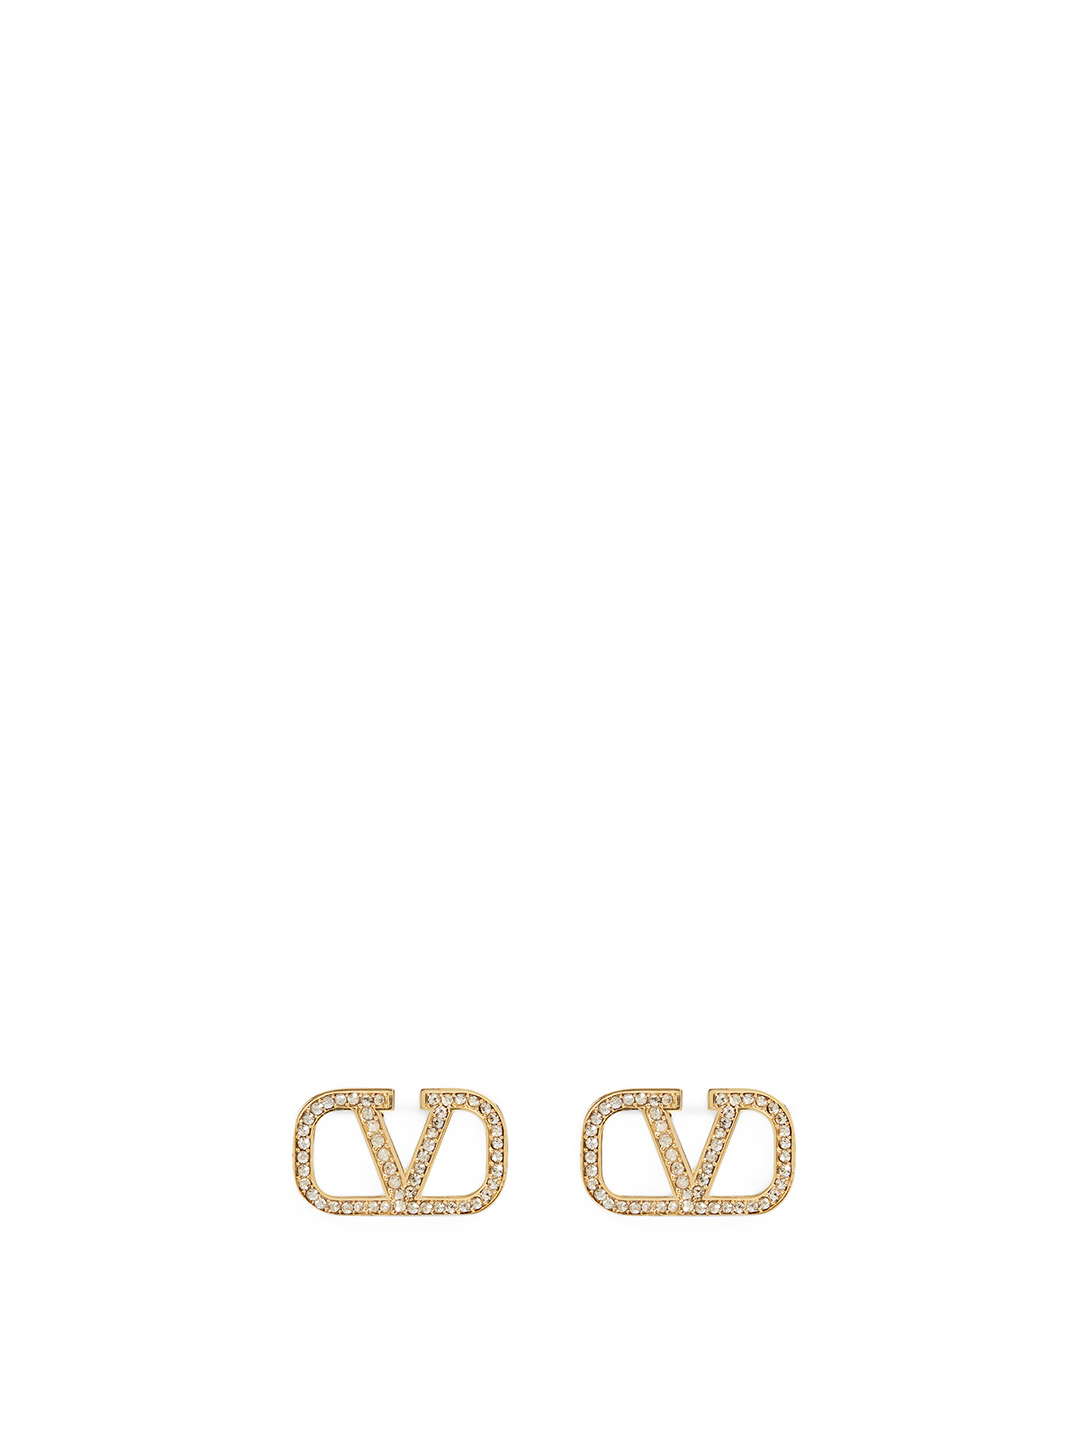 VALENTINO VLOGO Earrings With Crystals Women's Metallic